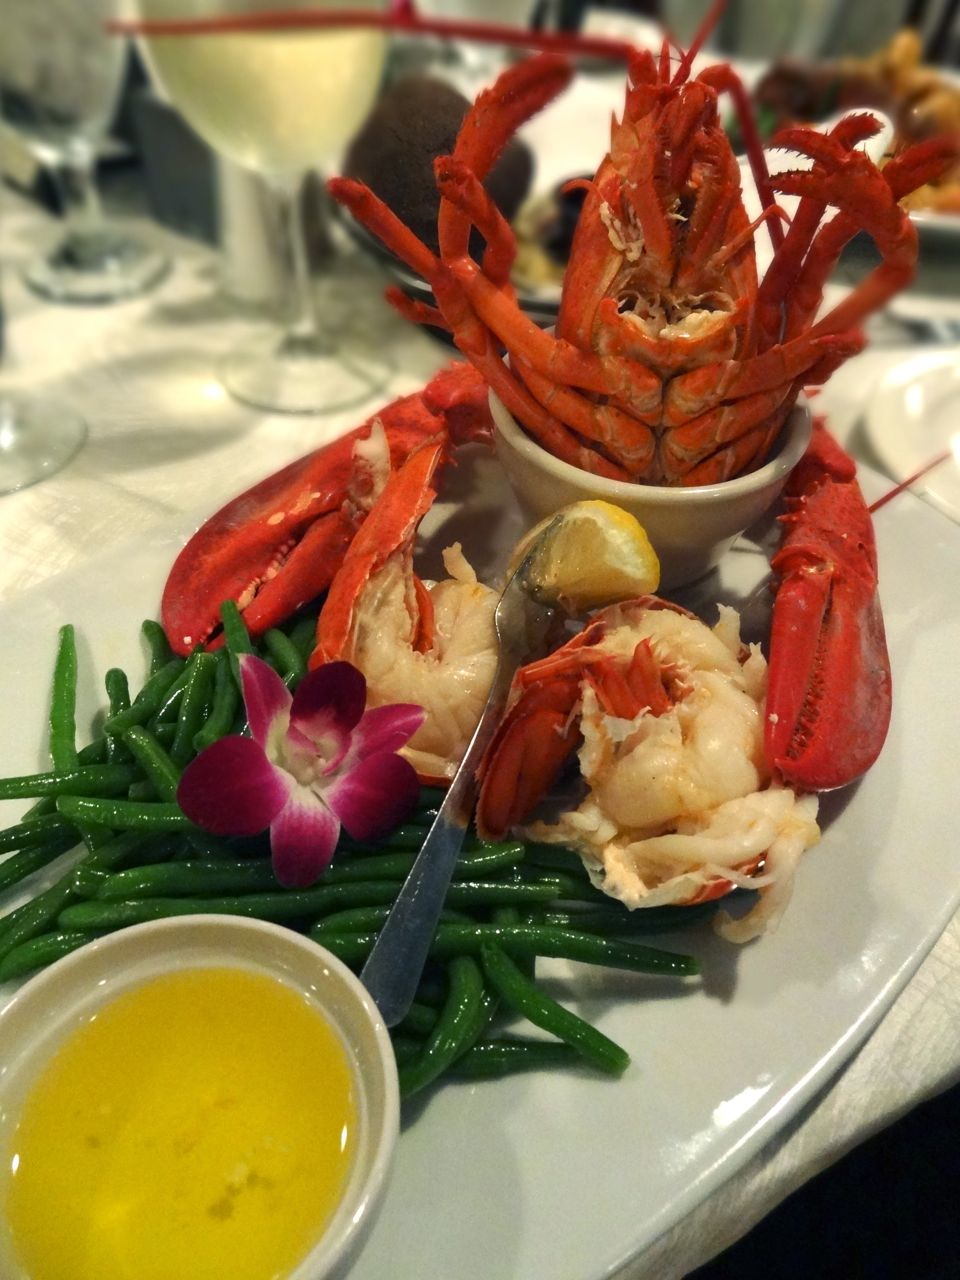 Steamed Maine Lobster with drawn butter